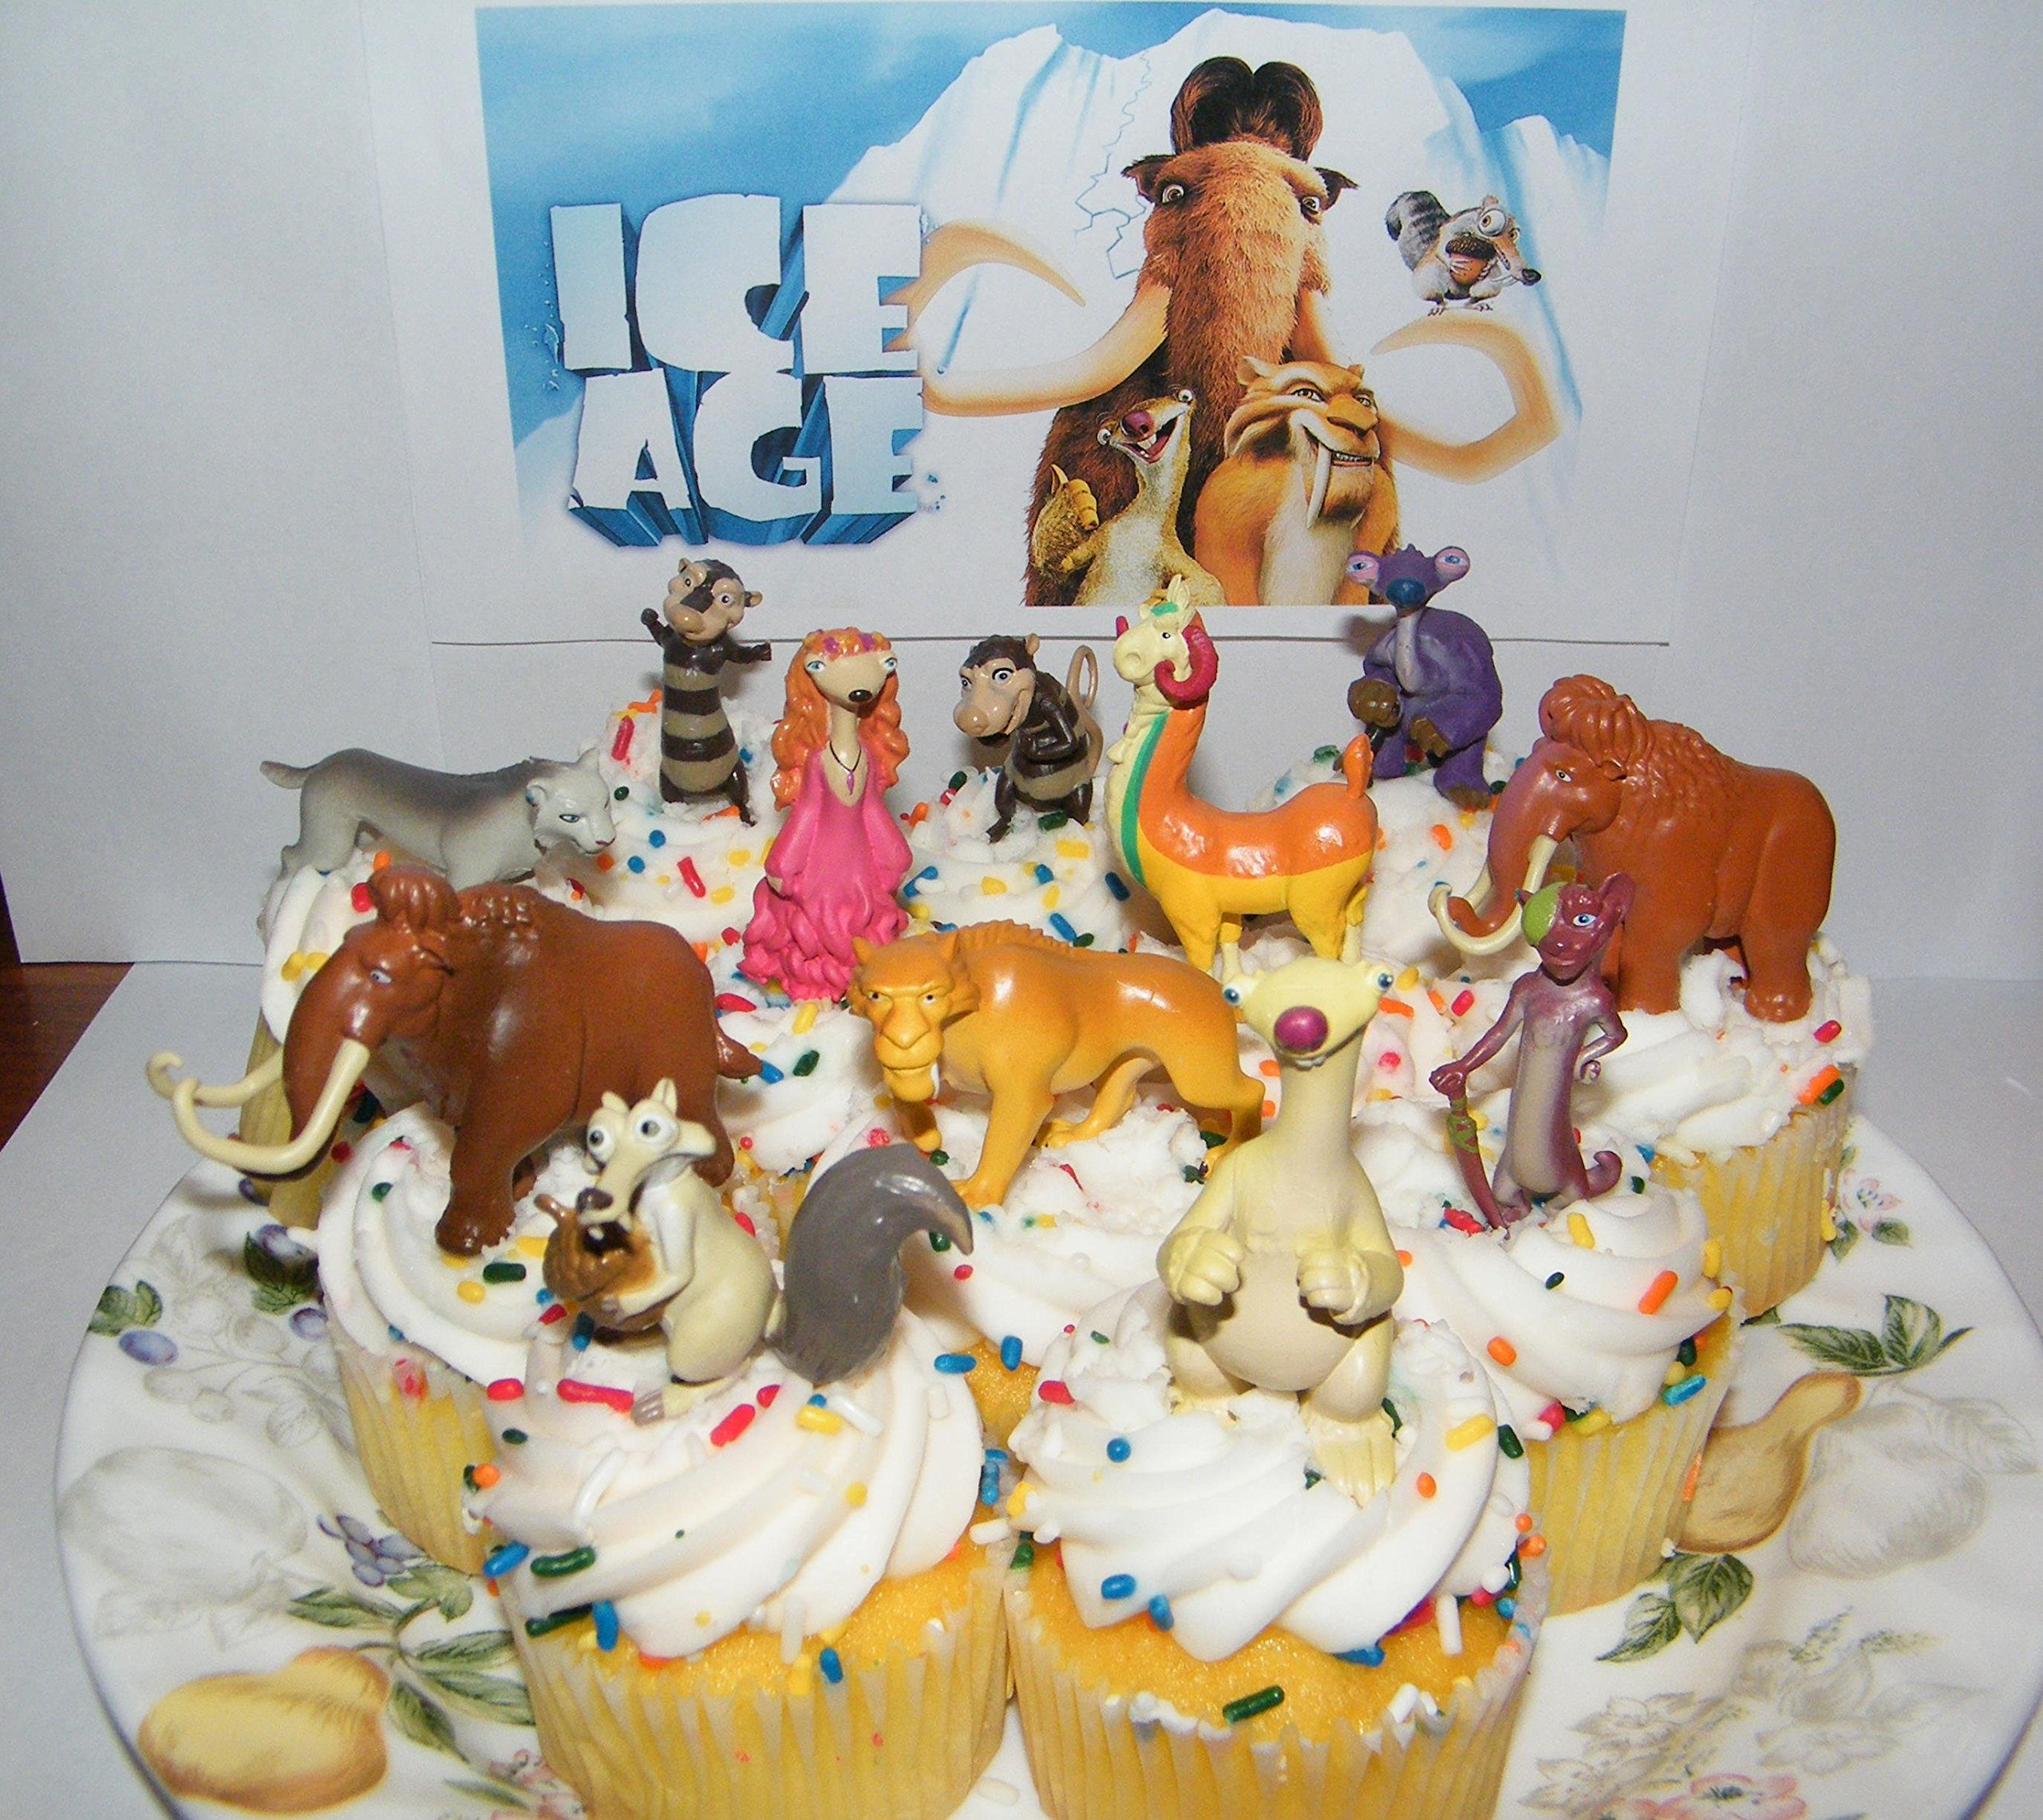 Ice Age Movies Deluxe Cake Toppers Cupcake Decorations Set of 13 Figures with Manny, Scat, Diego, Sid, Granny, the Possum Brothers and Many More!